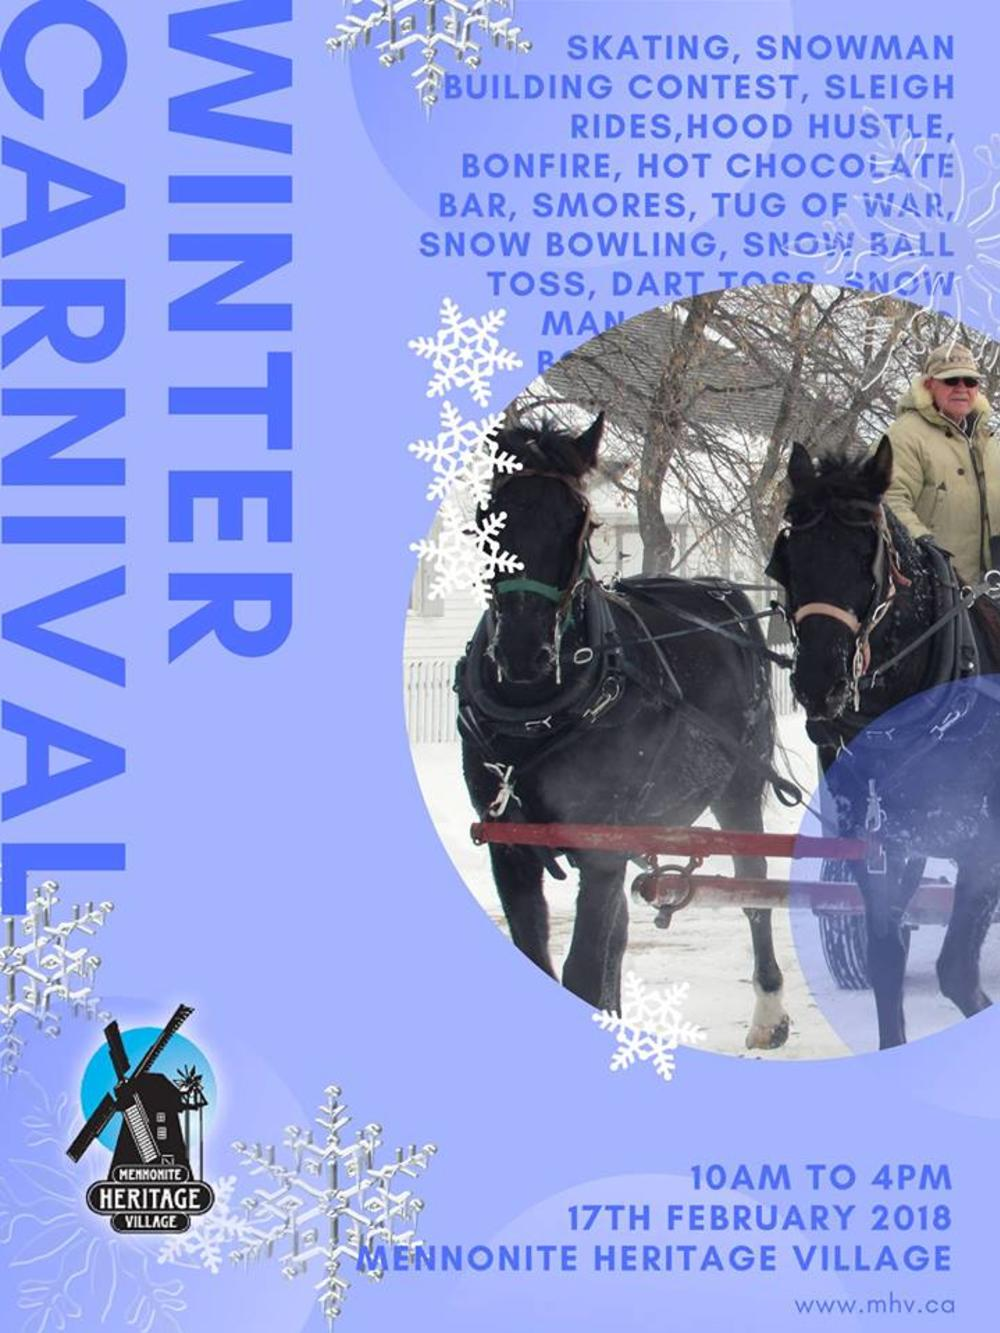 Winter Carnival in Mennonite Heritage Village, Steinbach